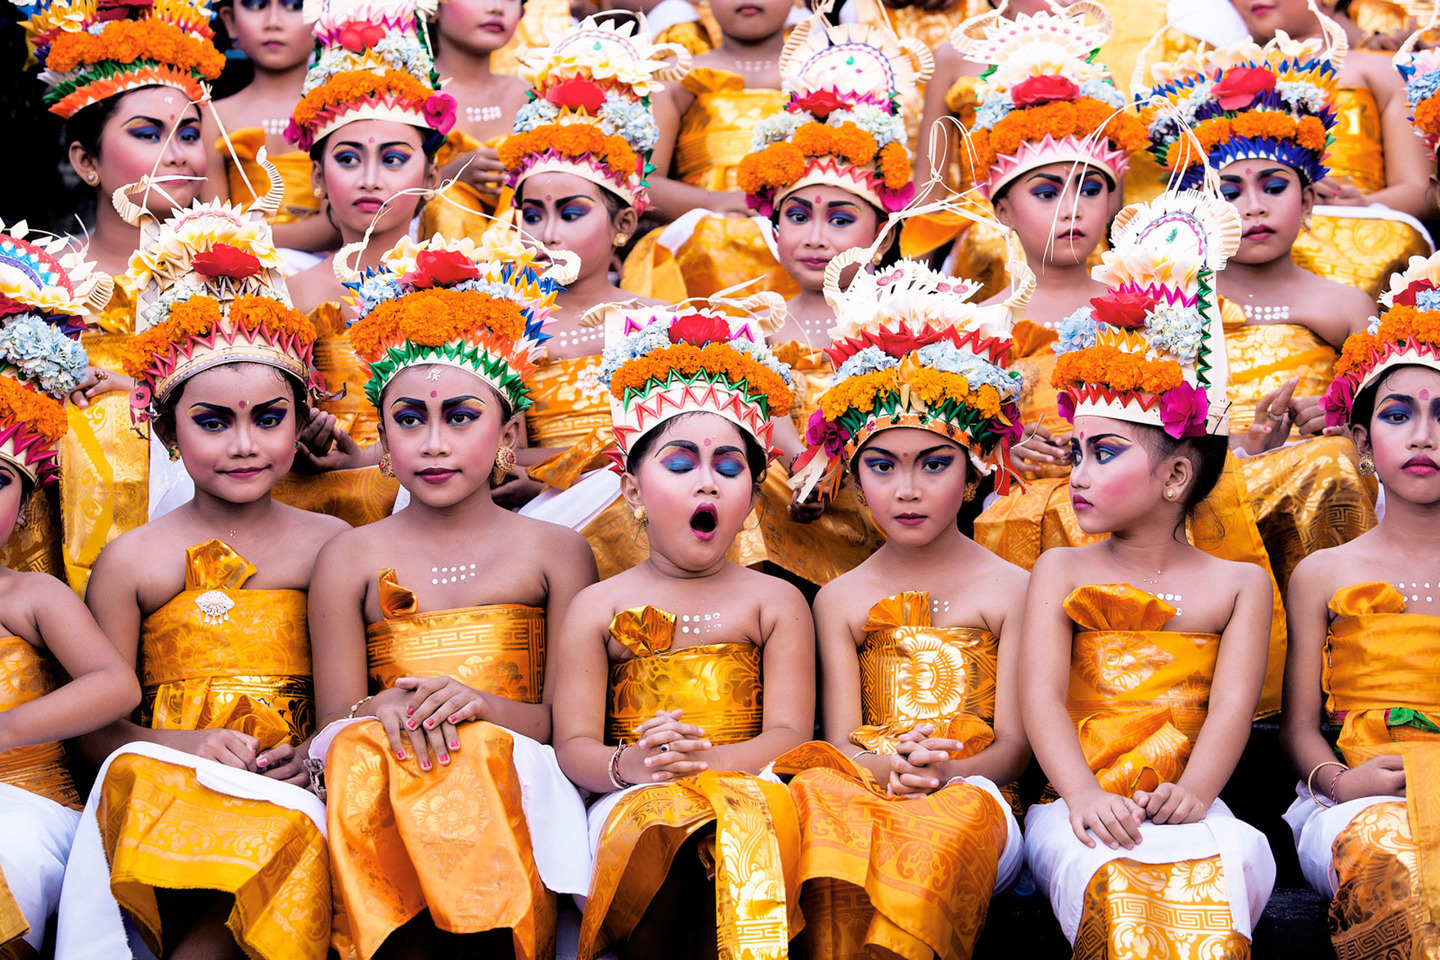 Image was taken in Bali during Melasti Festival. This Festival is conducted once a year in conjunction with Nyepi or Silent Day. These young girls were waiting for their turn to perform. They looked stunning with their bright coloured costumes and heavy make-up on, however the expression on each of the girls' face especially the yawning girl gives this image an extra 'ummpph'.